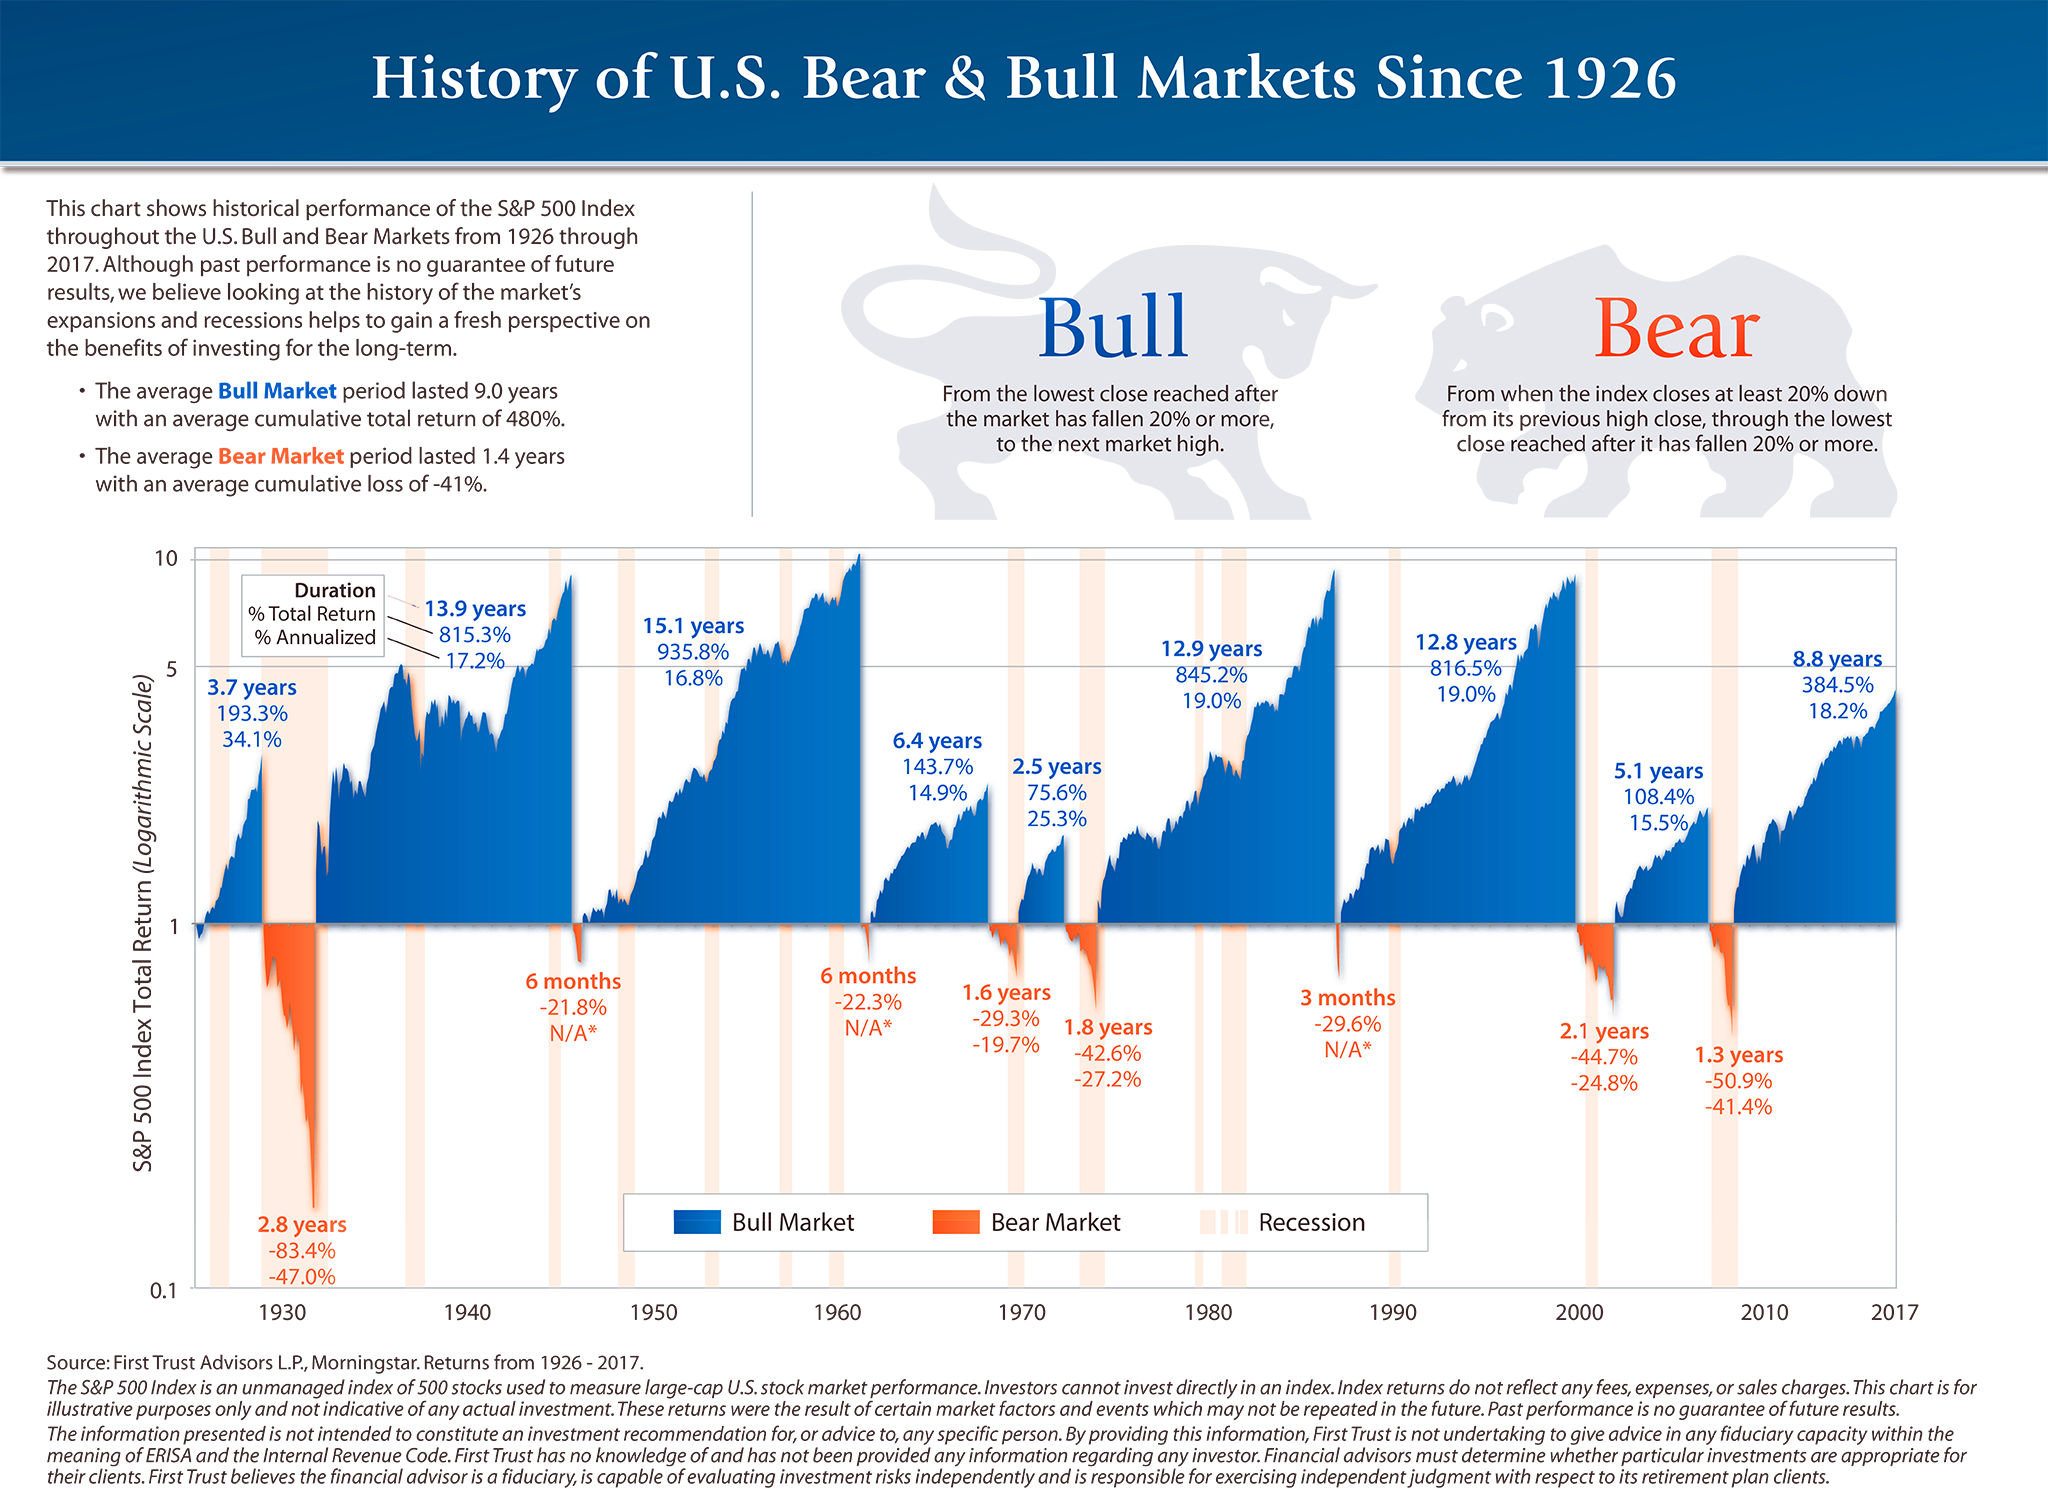 Bulls and Bears markets by data of Standard & Poors 500